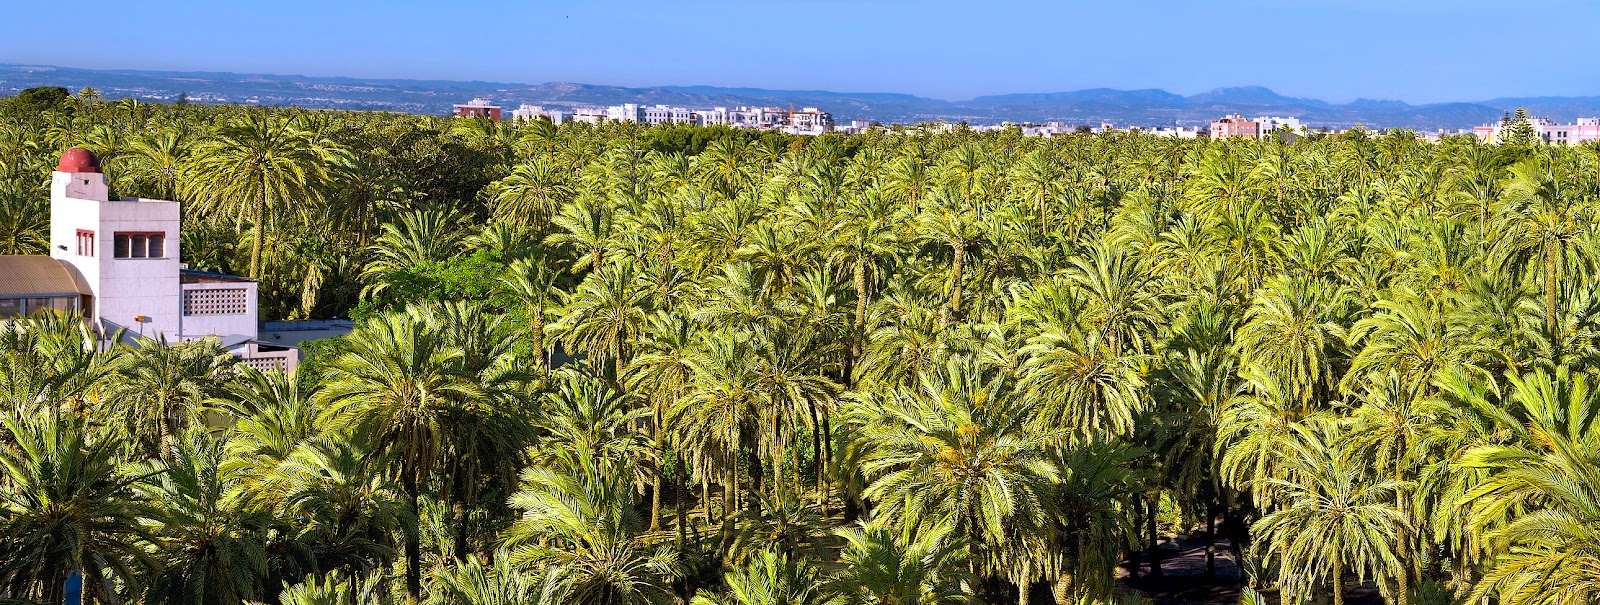 A beautiful palm trees sea